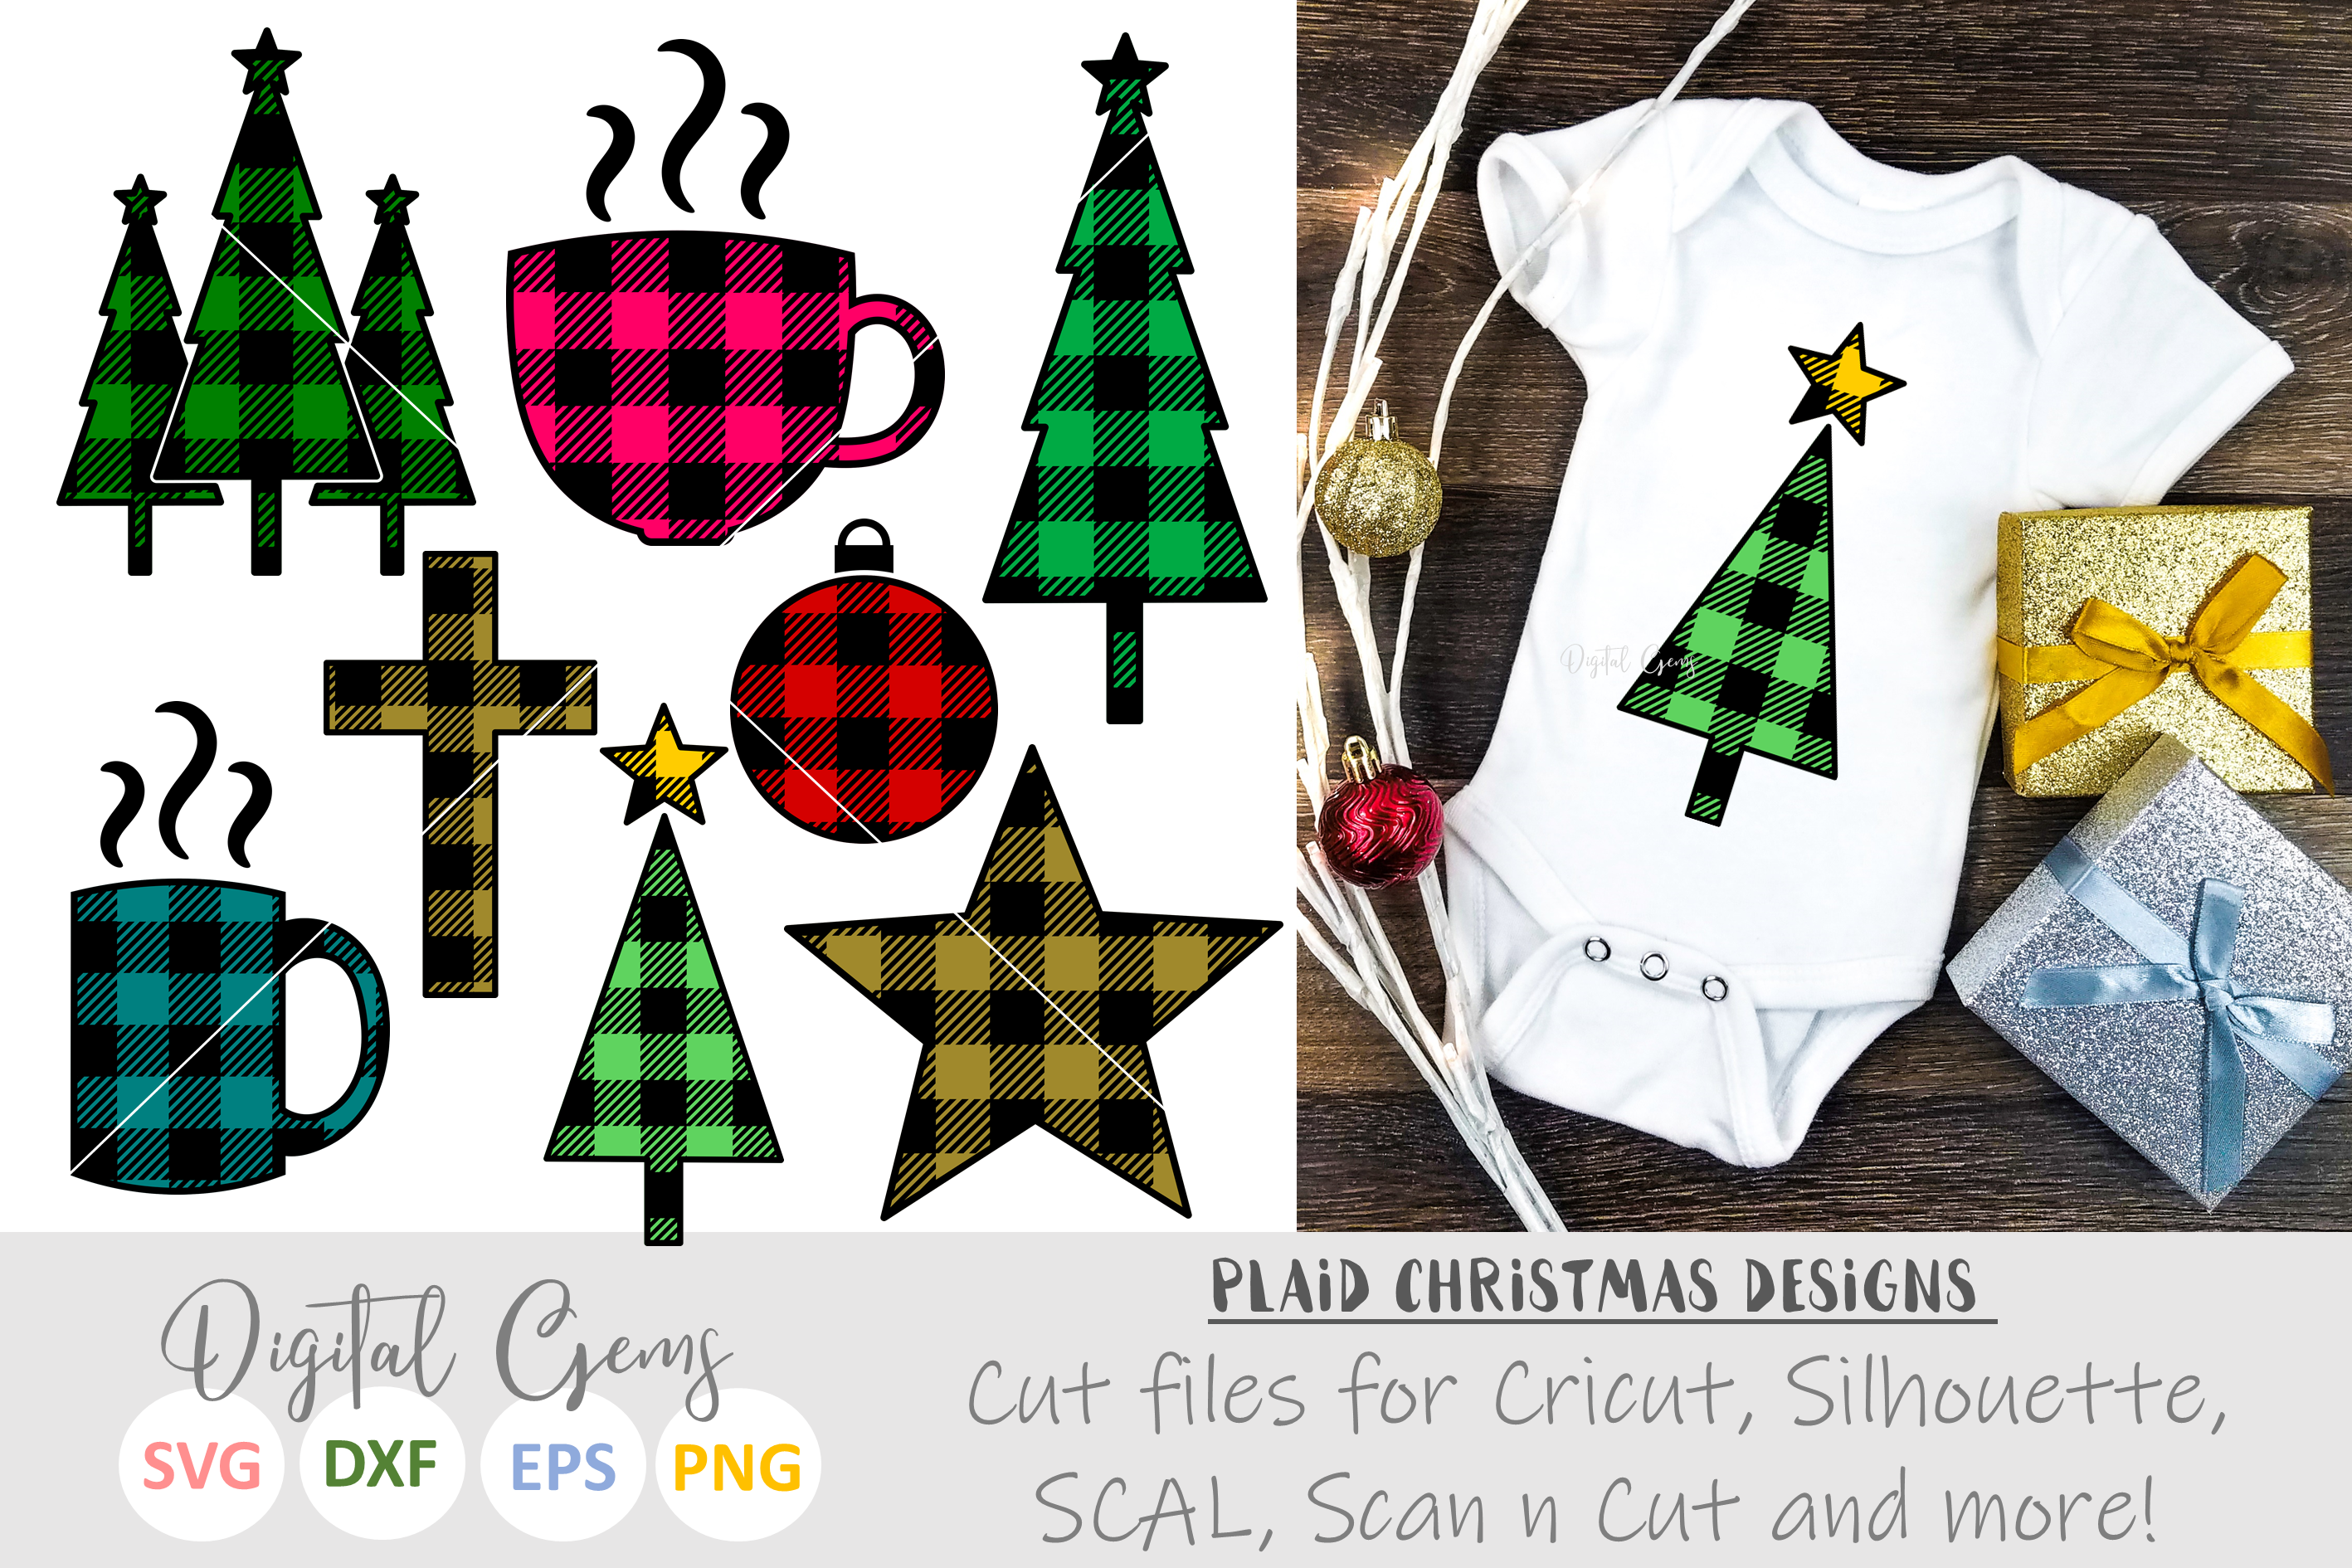 Plaid Christmas designs. SVG / PNG / EPS / DXF files example image 1